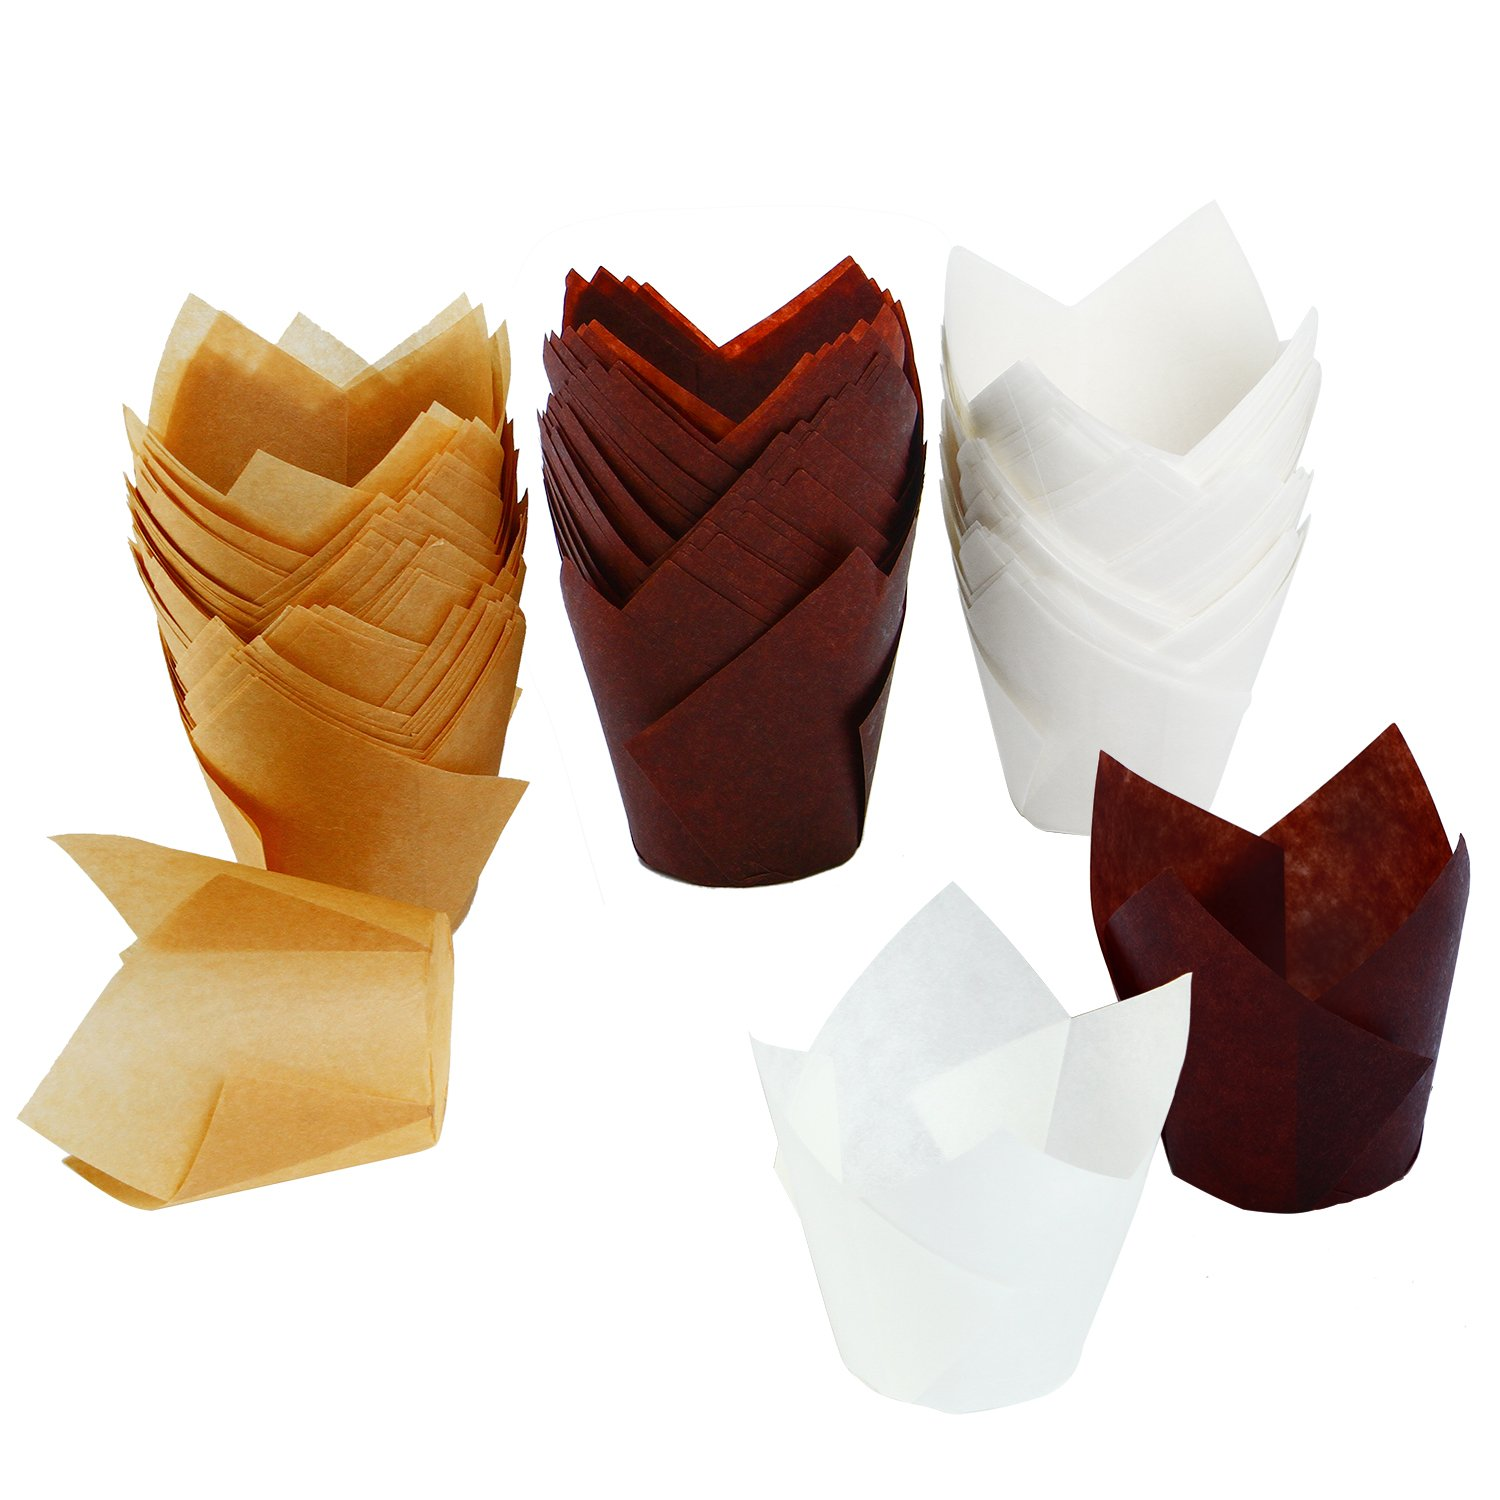 Resinta 150 Pieces Tulip Baking Cups Cupcake Liners Muffin Liners for Birthday,Wedding Brown Baby Shower